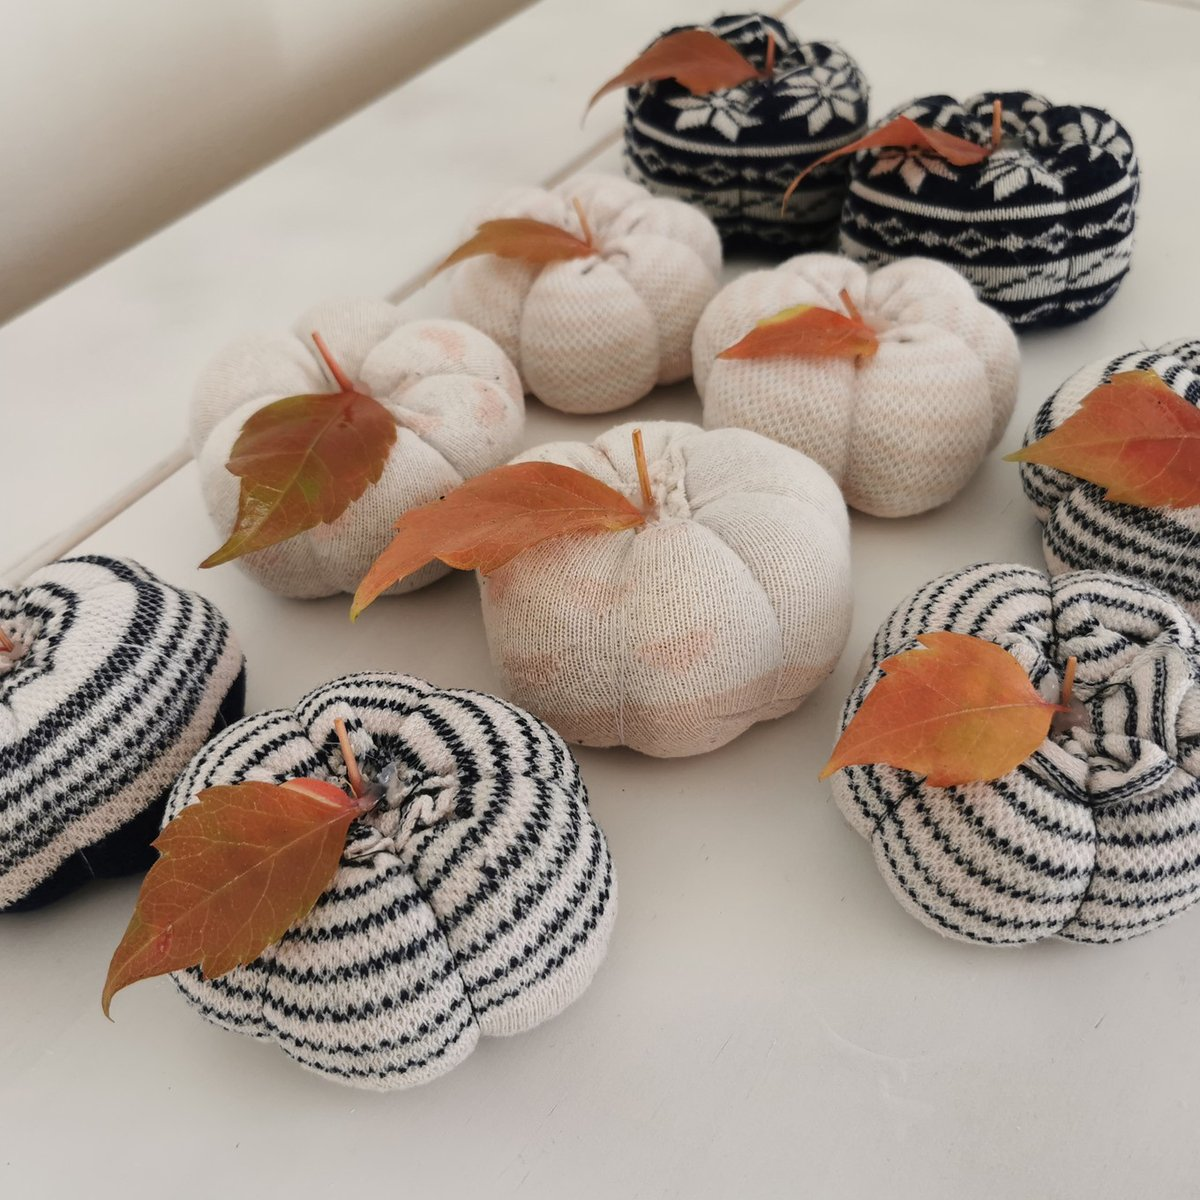 Sueanne made these super cute pumpkins from socks, dried rice and cotton - the perfect alternative autumn display!   Enter our October Make of the Month Competition for a chance to win up to £100:  https://t.co/RjwMFtf4zF  #OctMotm20 #Competition #Hobbycraft https://t.co/Vb8hGFDj0f